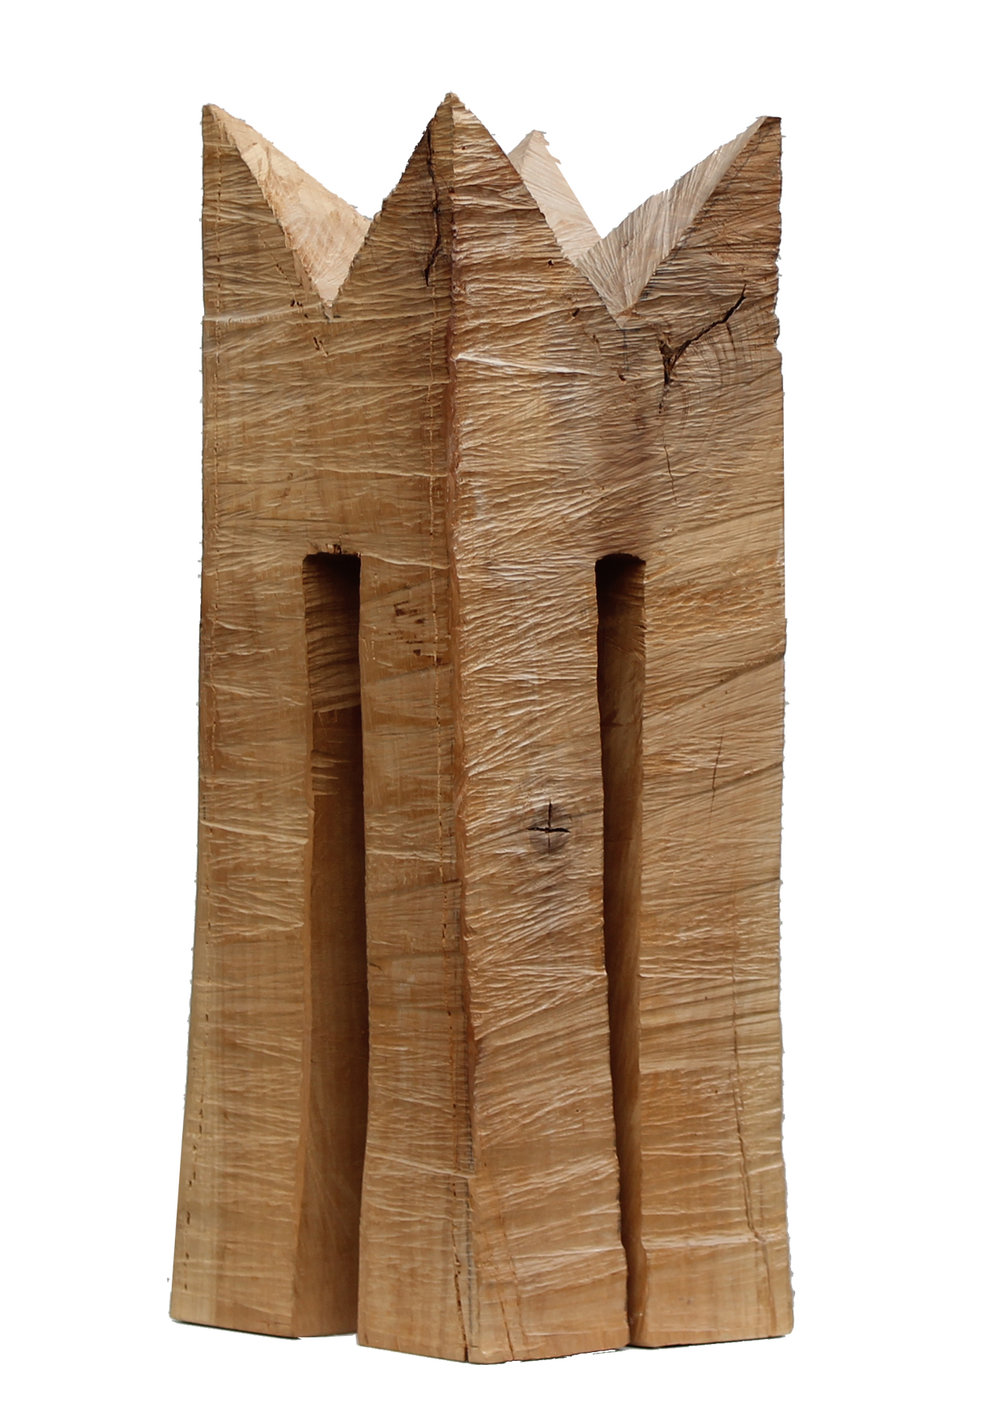 Ortrud Sturm Cherry Wood Starting at $1,000